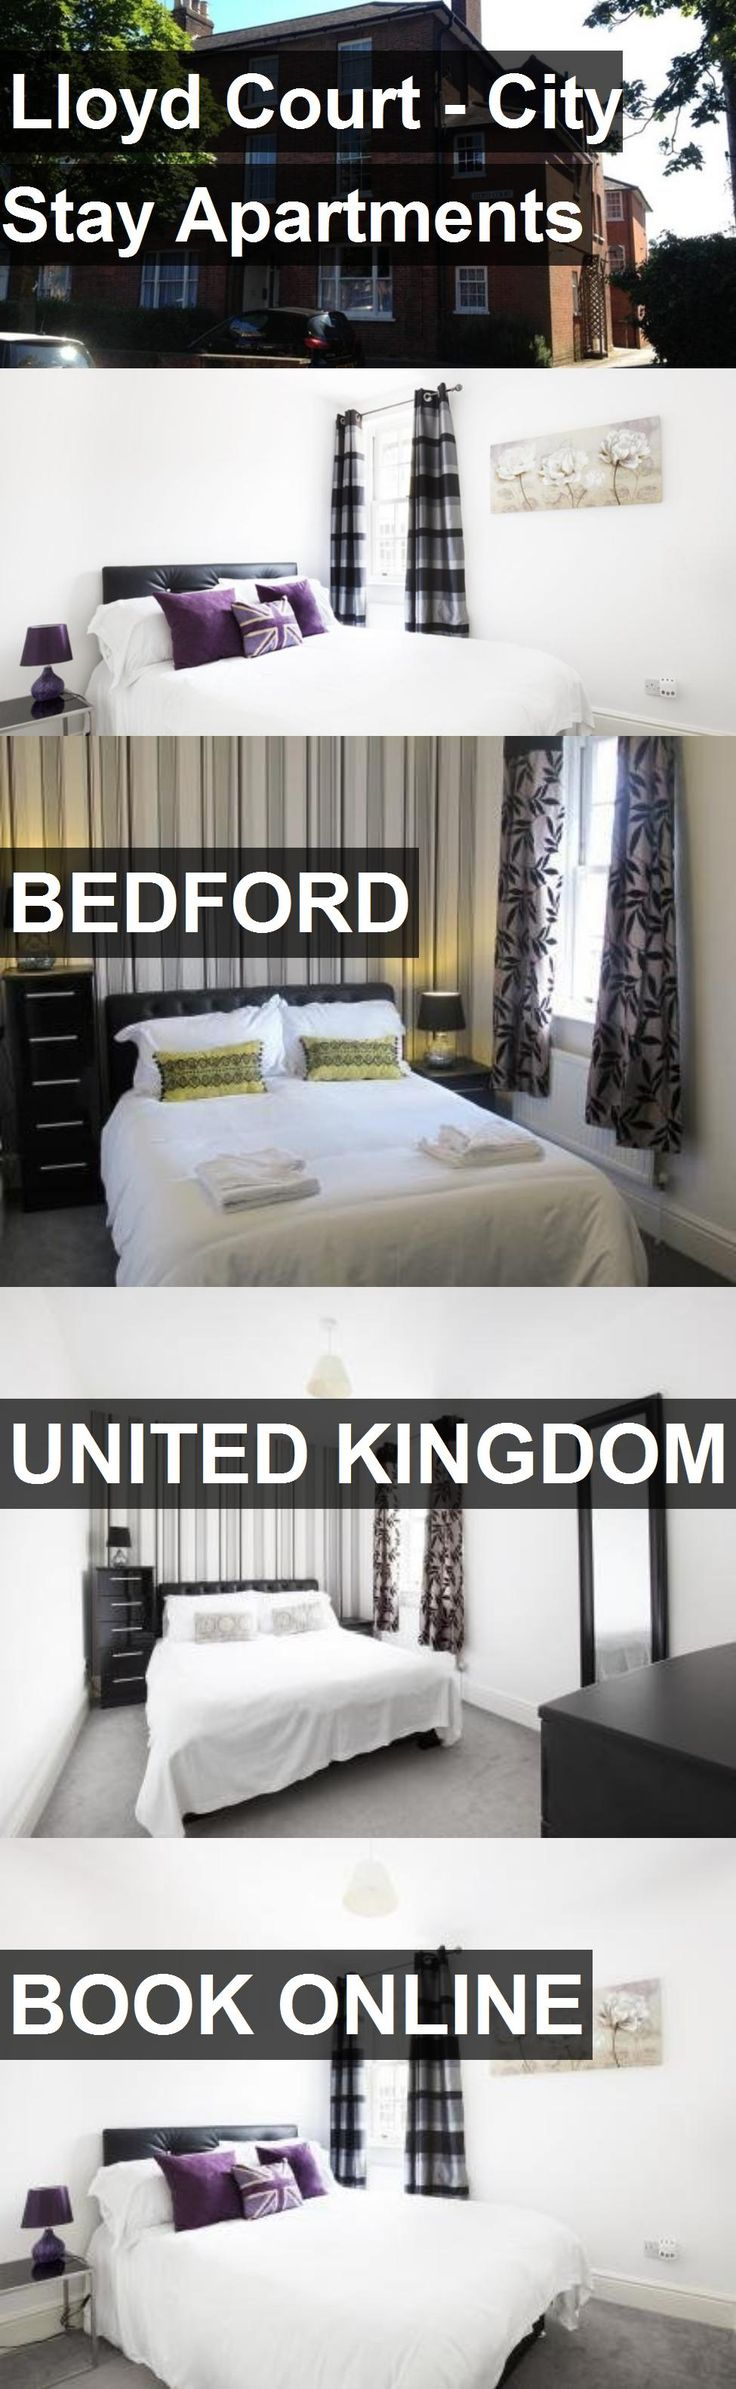 Lloyd Court - City Stay Apartments in Bedford, United Kingdom. For more information, photos, reviews and best prices please follow the link. #UnitedKingdom #Bedford #travel #vacation #apartment